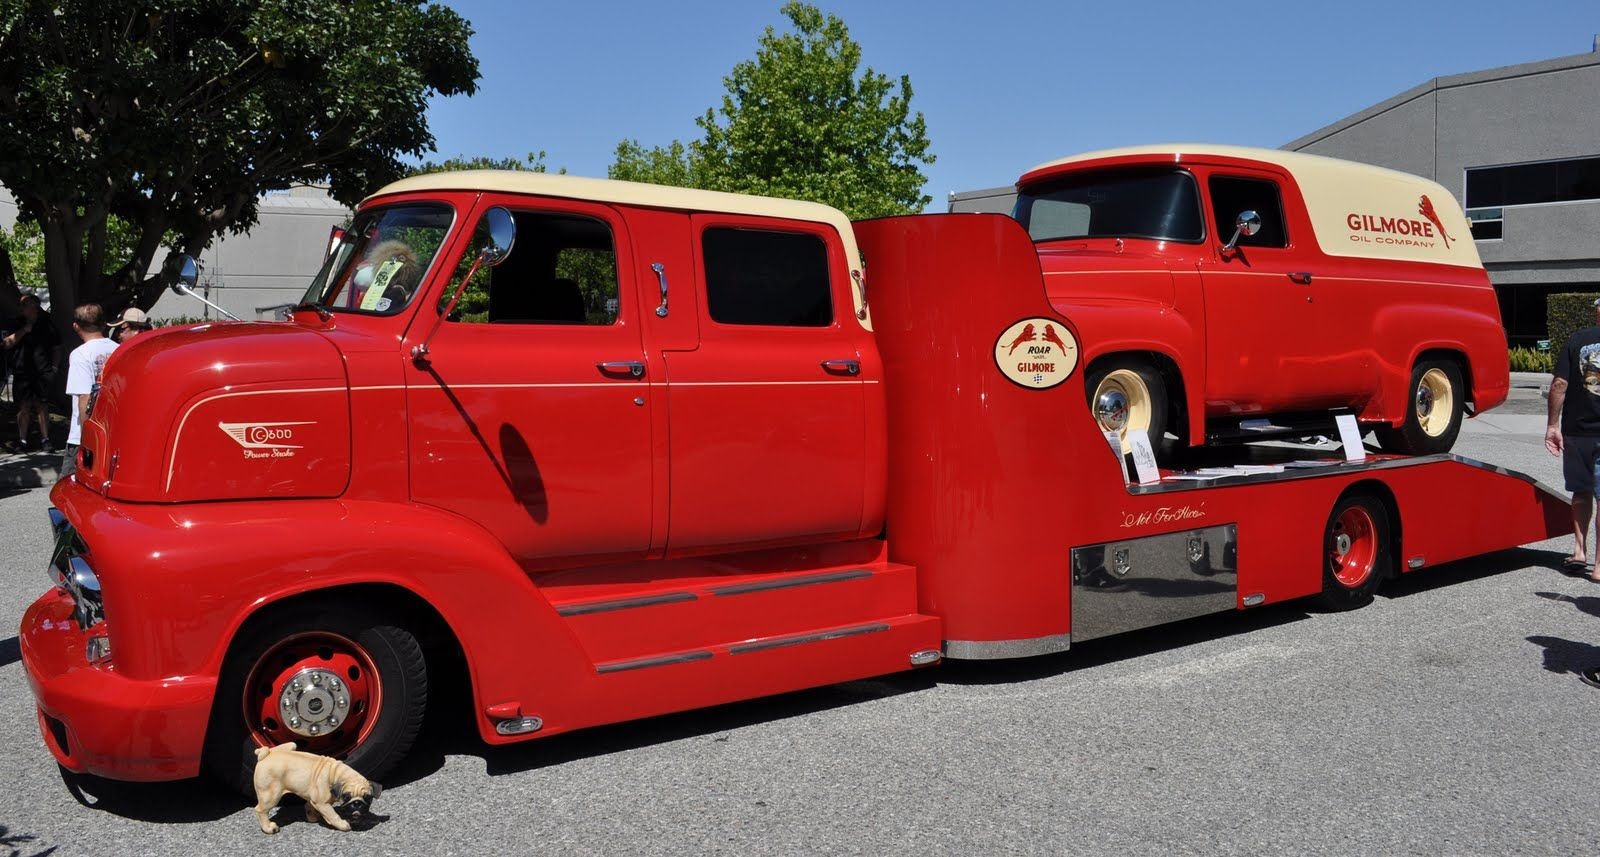 The \'53 COE crew cab in Gilmore colors has a matching panel truck ...